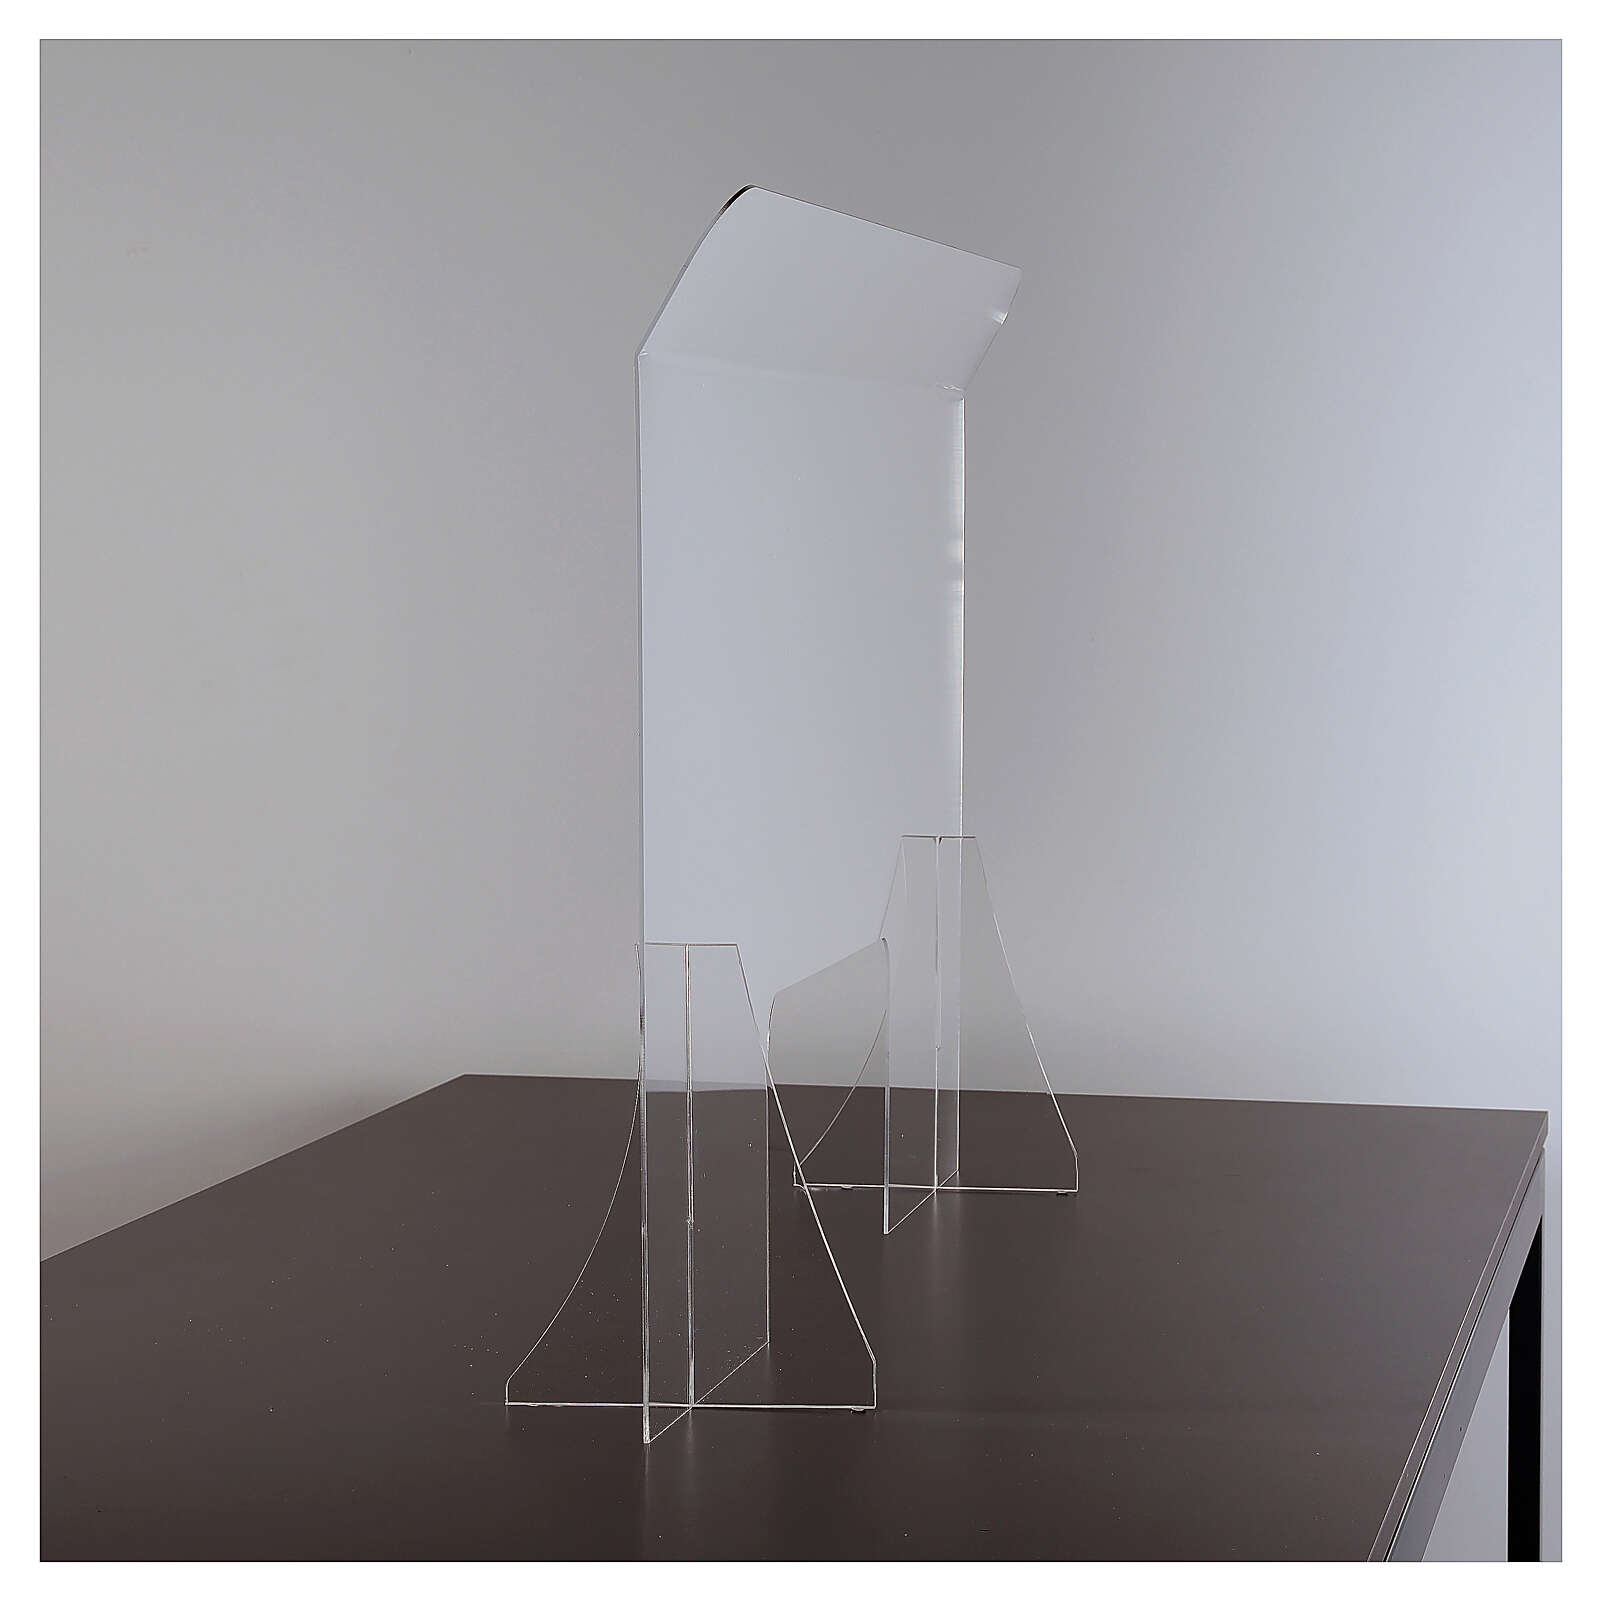 Plexiglass pane 98x100 window 20x40 cm 3